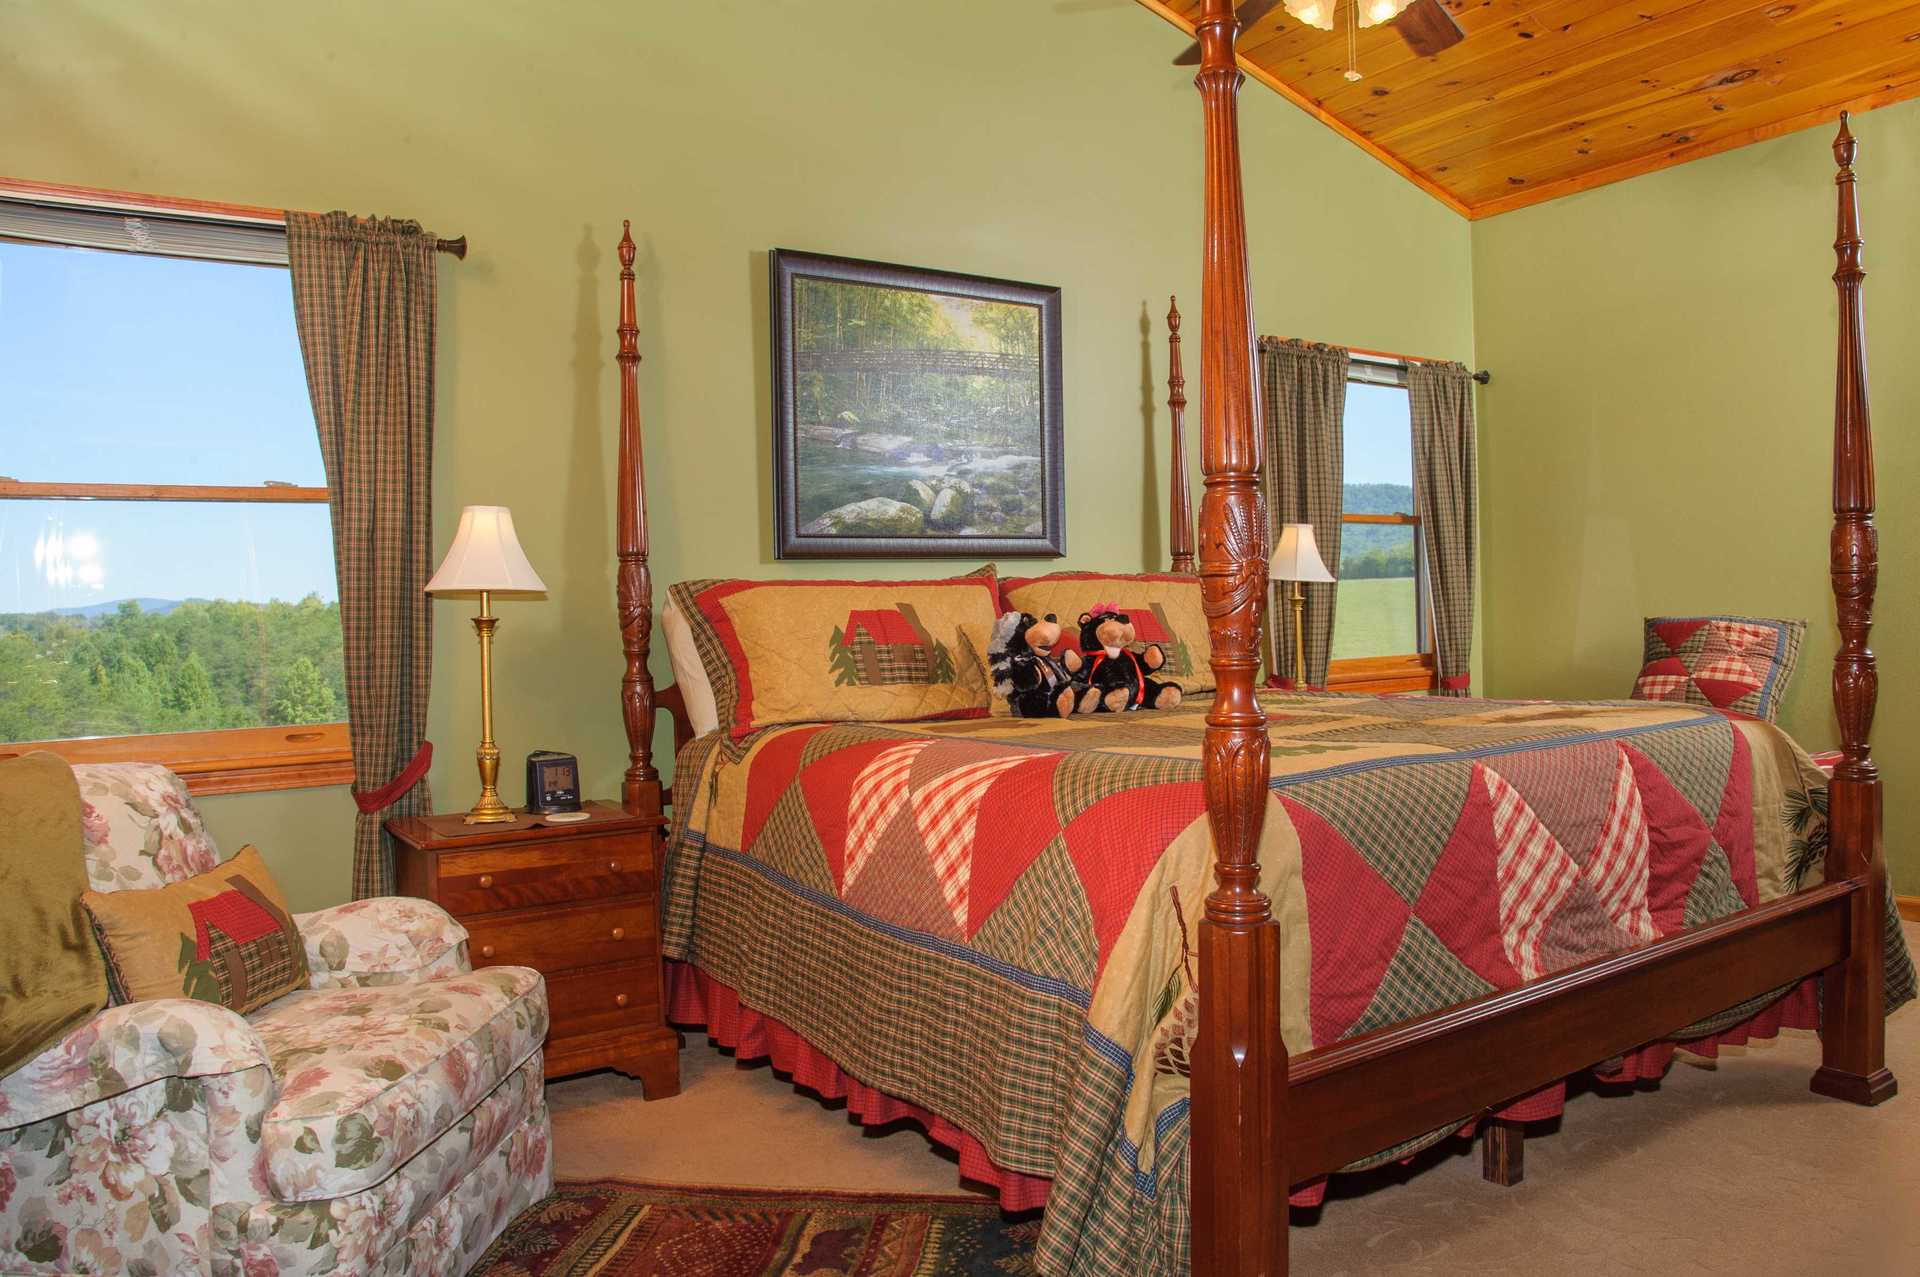 Blackberry Springs Suite in the Smoky Mountains